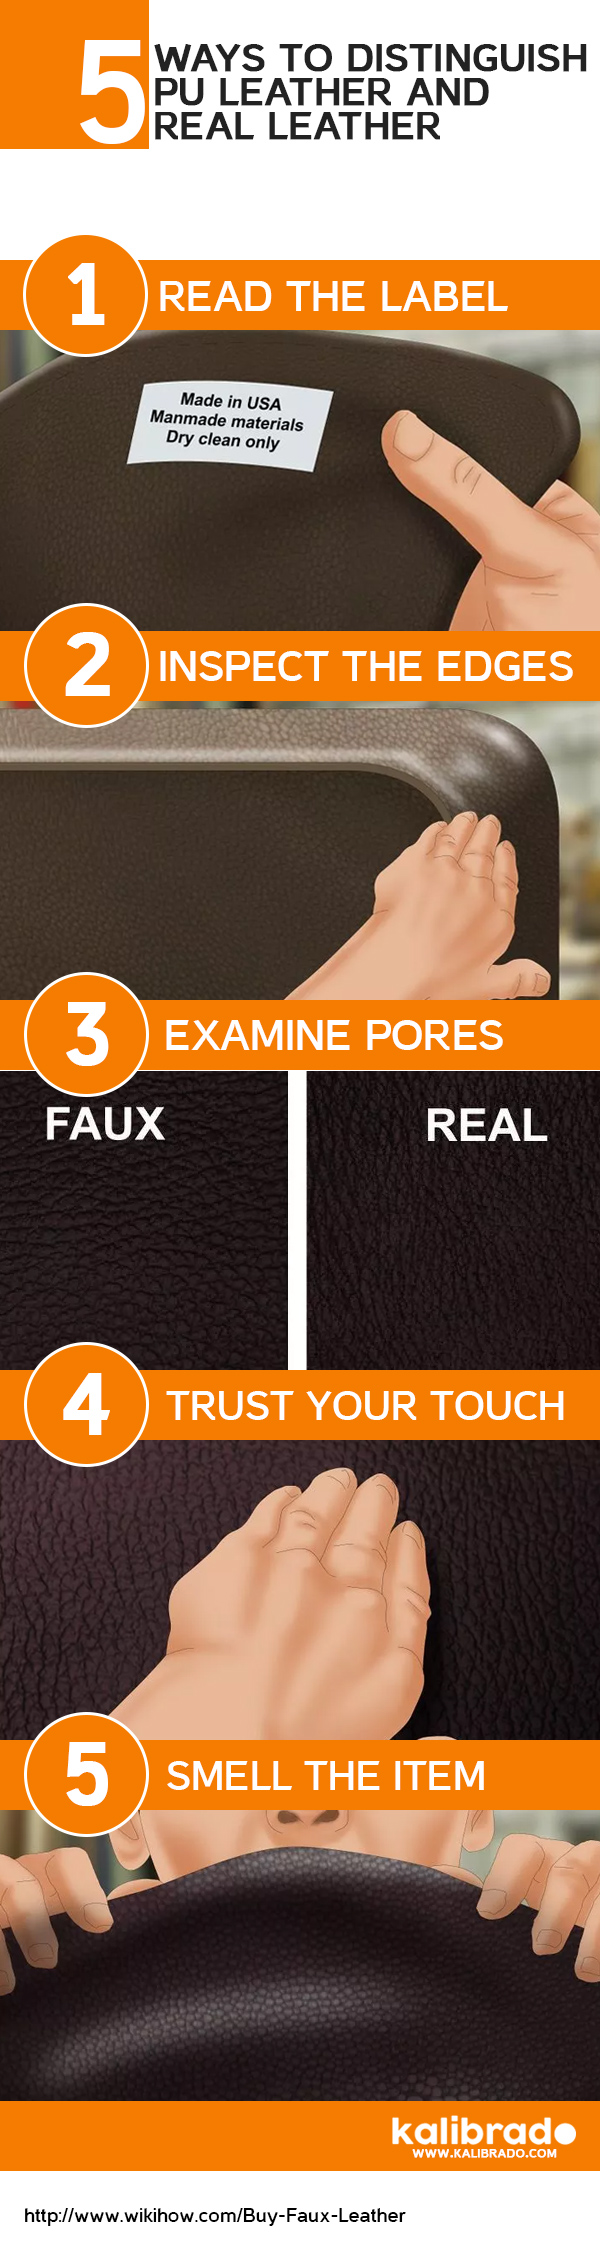 5-ways-to-distinguish-pu-leather-and-real-leather